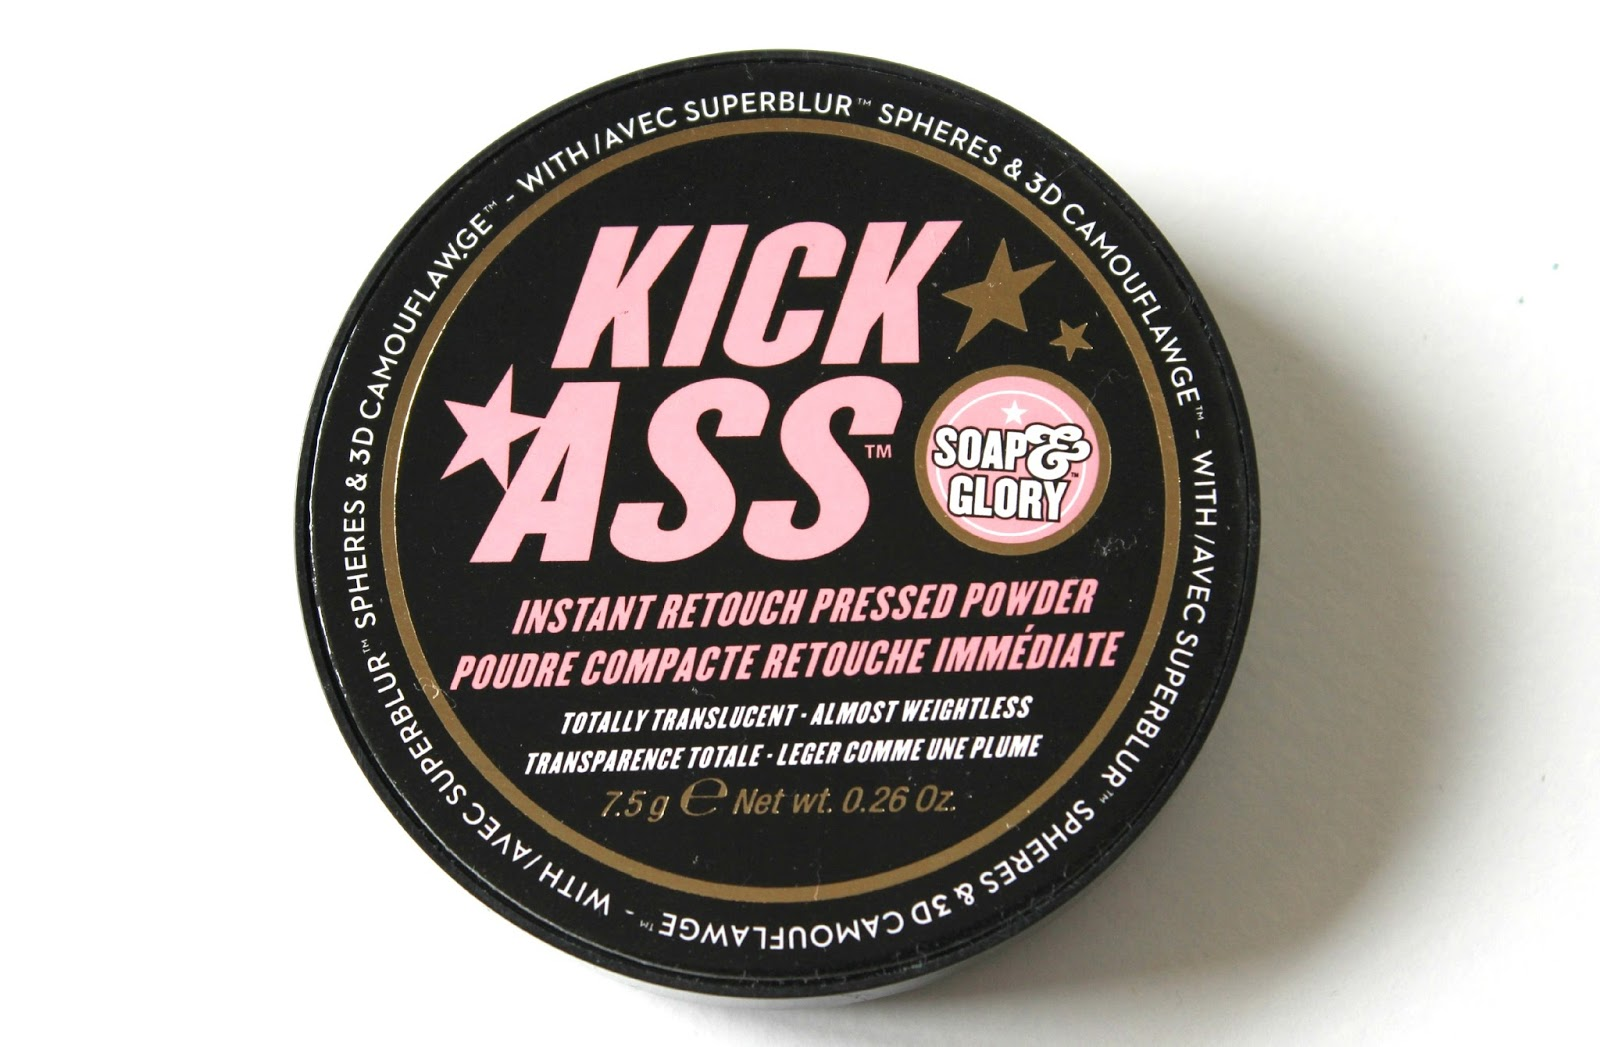 A picture of Soap & Glory Kick Ass Instant Retouch Pressed Powder